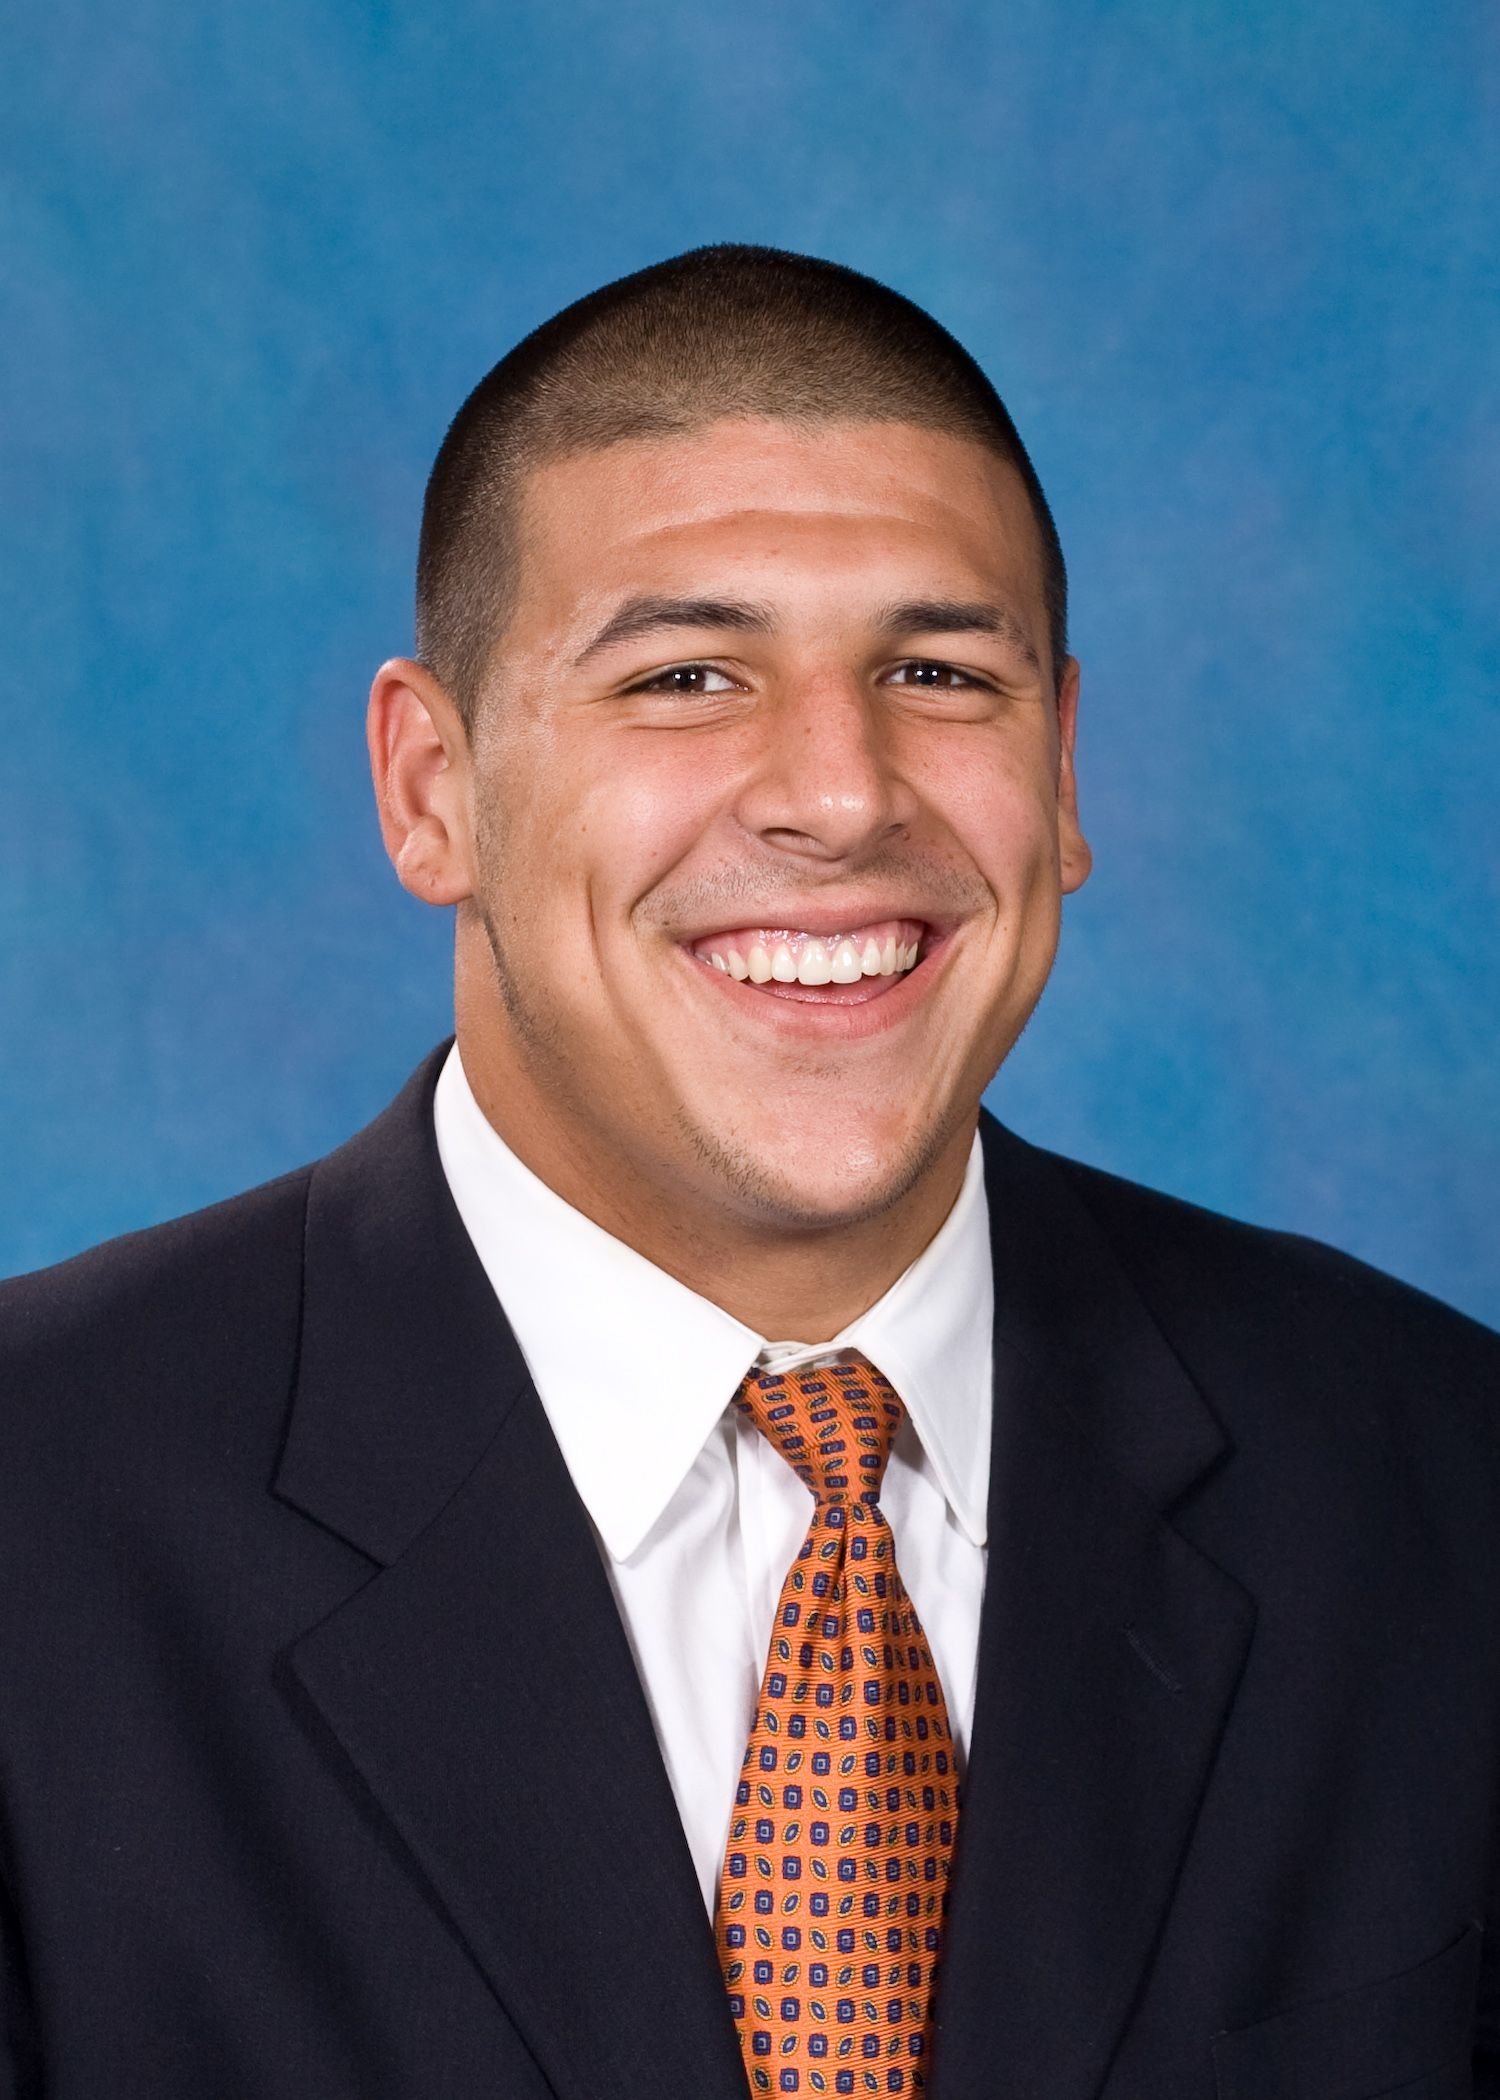 Aaron Hernandez draft scouting photo. A great pick for